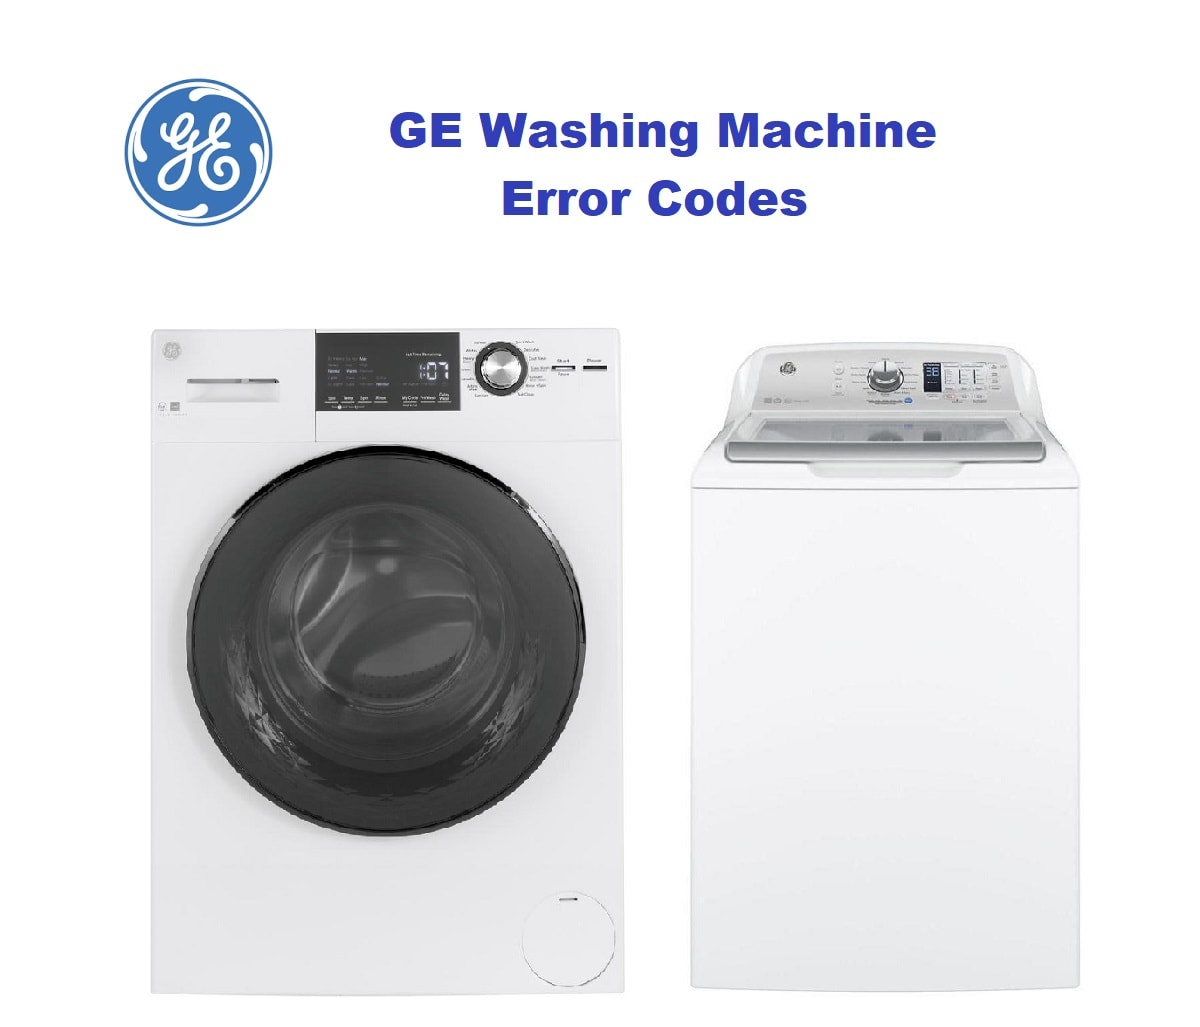 GE Washing Machine Error Codes-Troubleshooting,Problems,Manuals